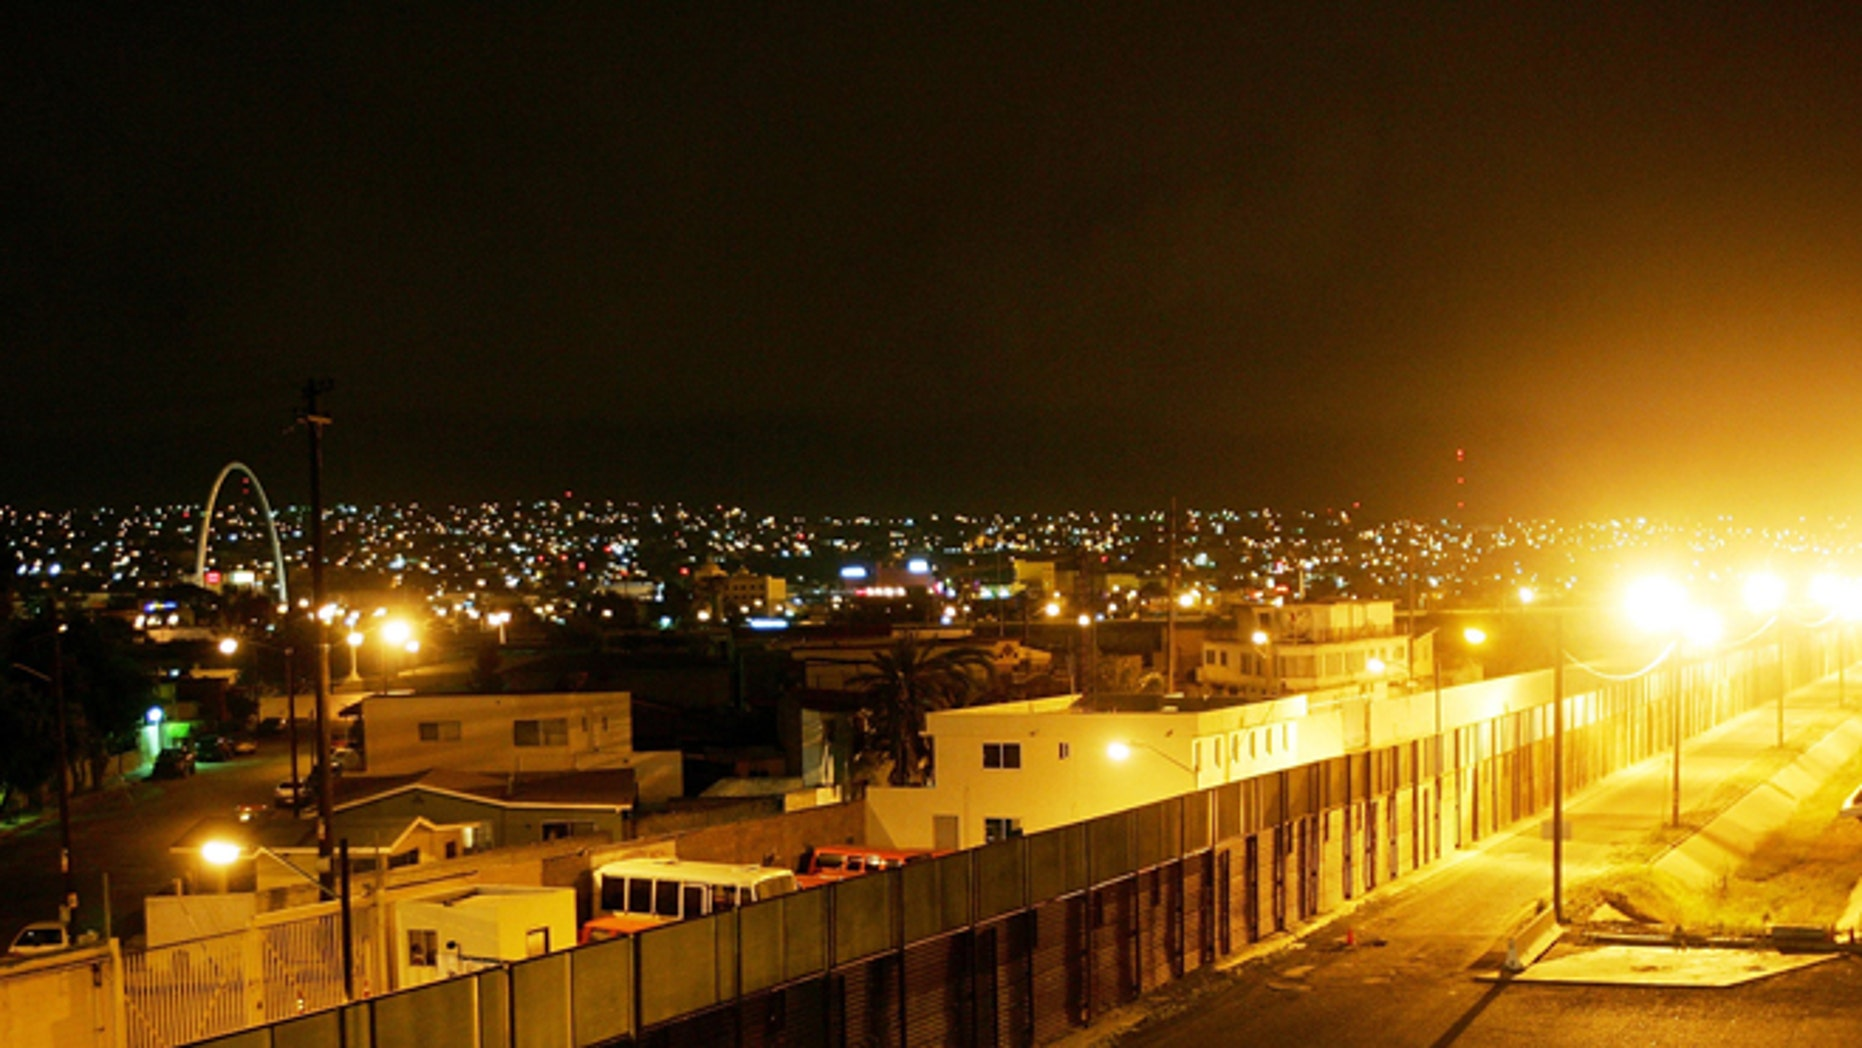 """TIJUANA, MEXICO - MAY 04:  The U.S.-Mexico border fence divides Tijuana (L) and the U.S. (R) in the early morning hours May 4, 2006 in Tijuana, Mexico. Mexican President Vicente Fox refused to sign a bill that would legalize the personal use of drugs and narcotics. The law would have been among the world's most permissive. On May 2, Fox's spokesman pledged the president would sign it but on May 3, hours after U.S. officials warned the plan could encourage """"drug tourism?, the president sent the measure back to Congress for changes, prompting the Mexican media to accuse Fox of bowing to U.S. pressure. The law would have allowed possession of personal amounts of drugs by anyone 18 or older, including cocaine, Ecstasy, LSD, marijuana, heroin, opium, and more than 2 pounds of peyote, the hallucinogenic cactus used in native religious ceremonies. In the last 18 months, more than 1,000 people have been killed in escalating violence over smuggling routes to the U.S. Police and journalists have also become increasingly frequent targets, with automatic weapons and explosives becoming common tools of the trade.  (Photo by David McNew/Getty Images)"""